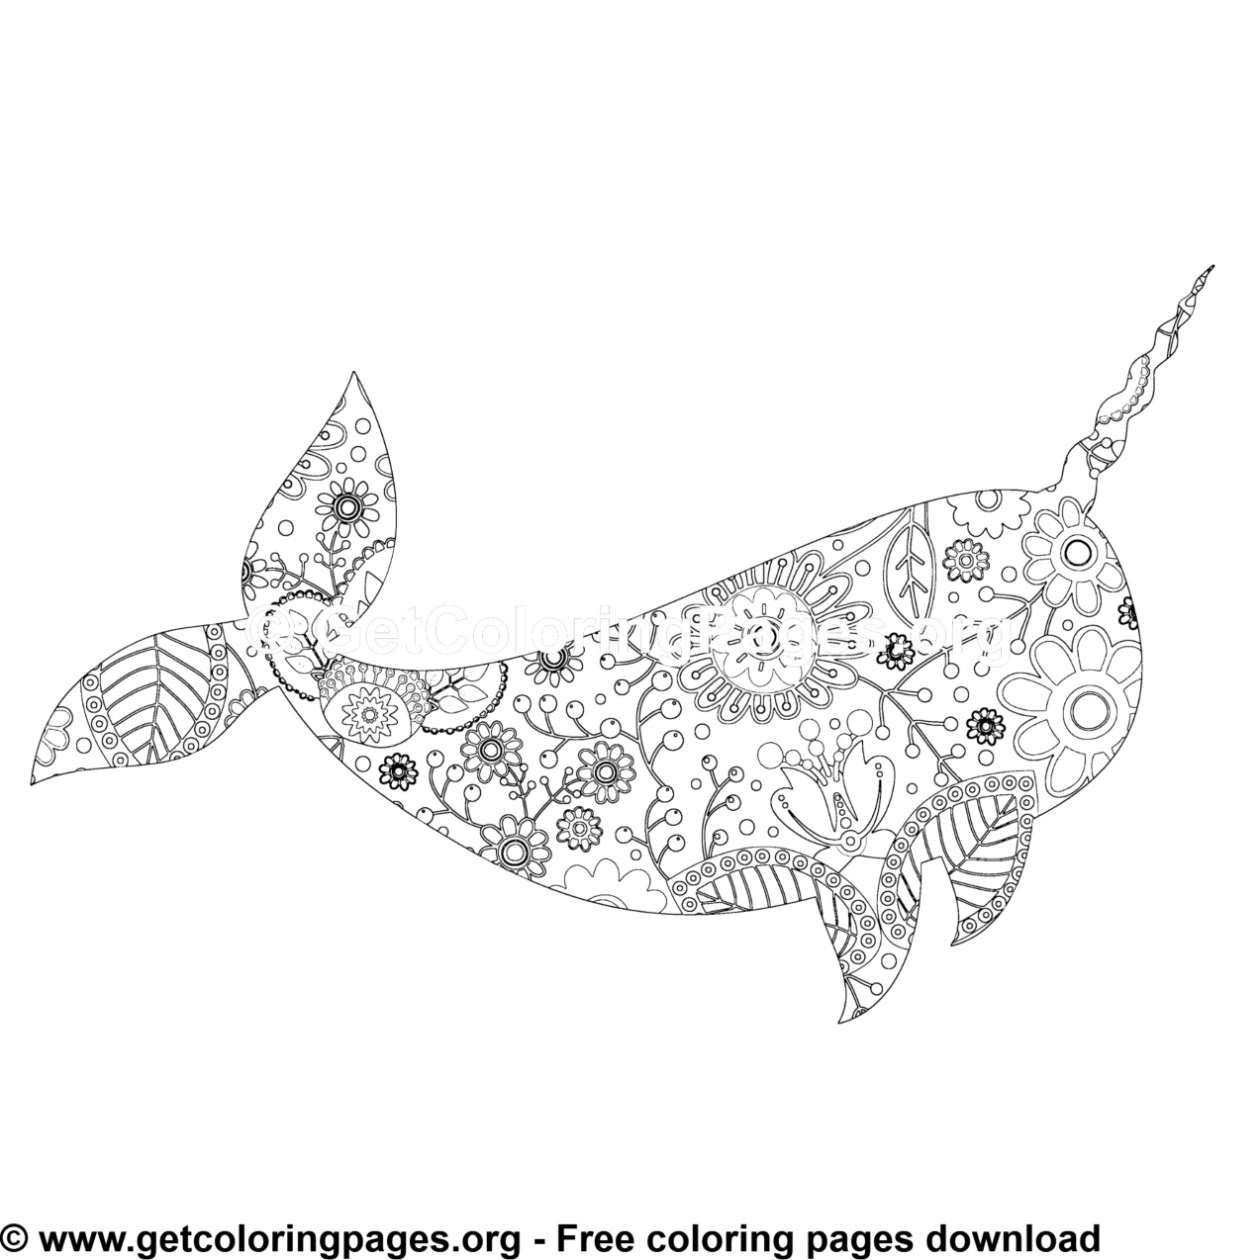 Zentangle Boho Narwhal Coloring Pages Coloring Pages Color Narwhal